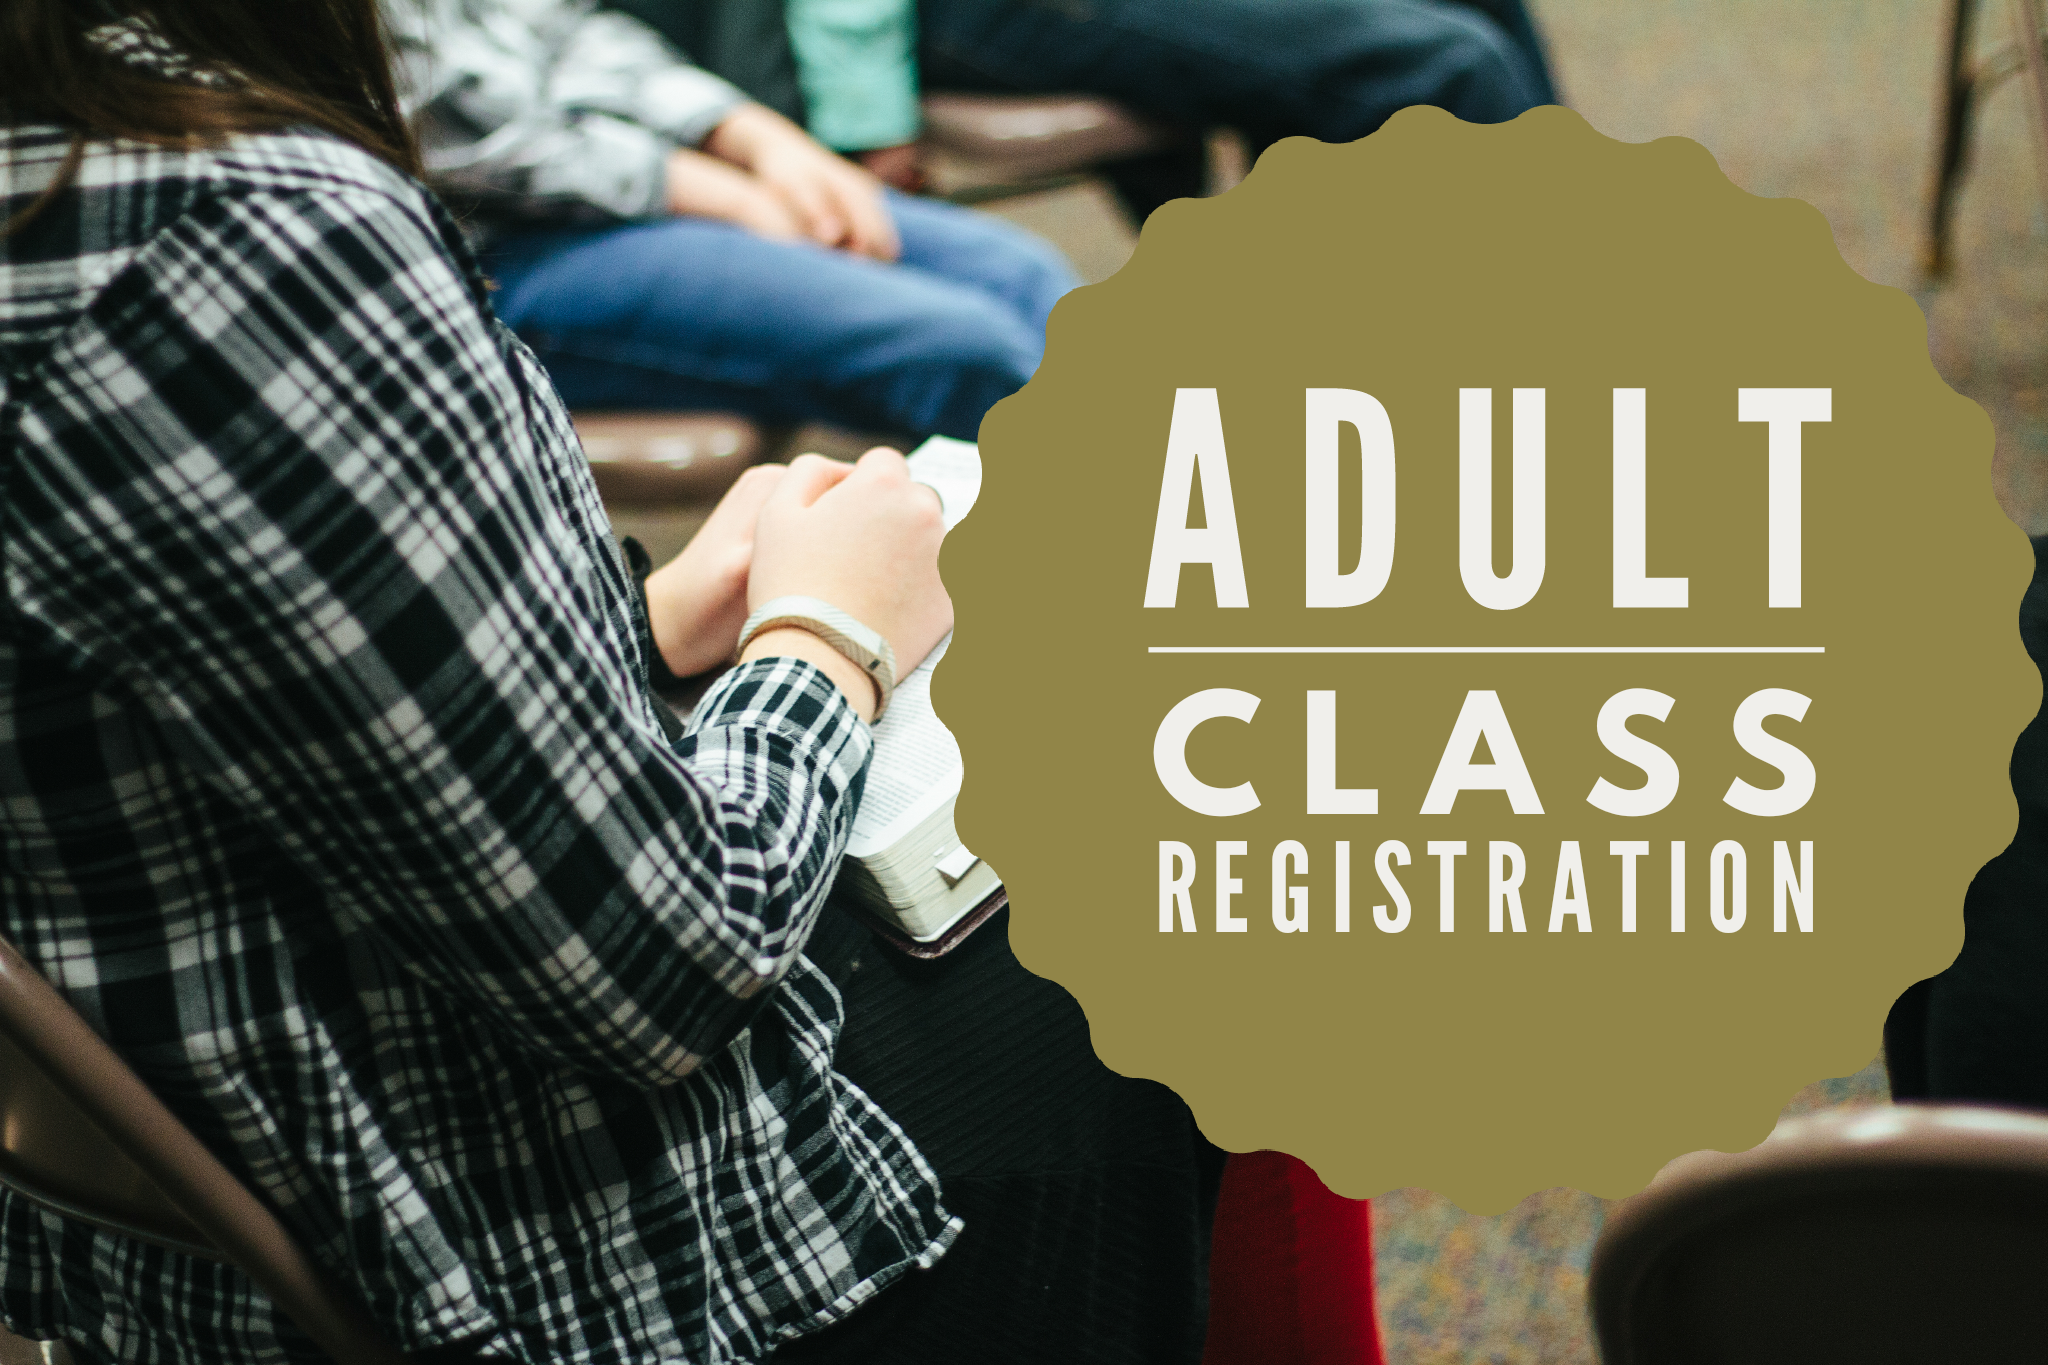 Adult Classes - Fall 2019 session of adult classes begin soon! Most will be held on Wednesday nights (with engaging children's program for infant-high school). Register today!